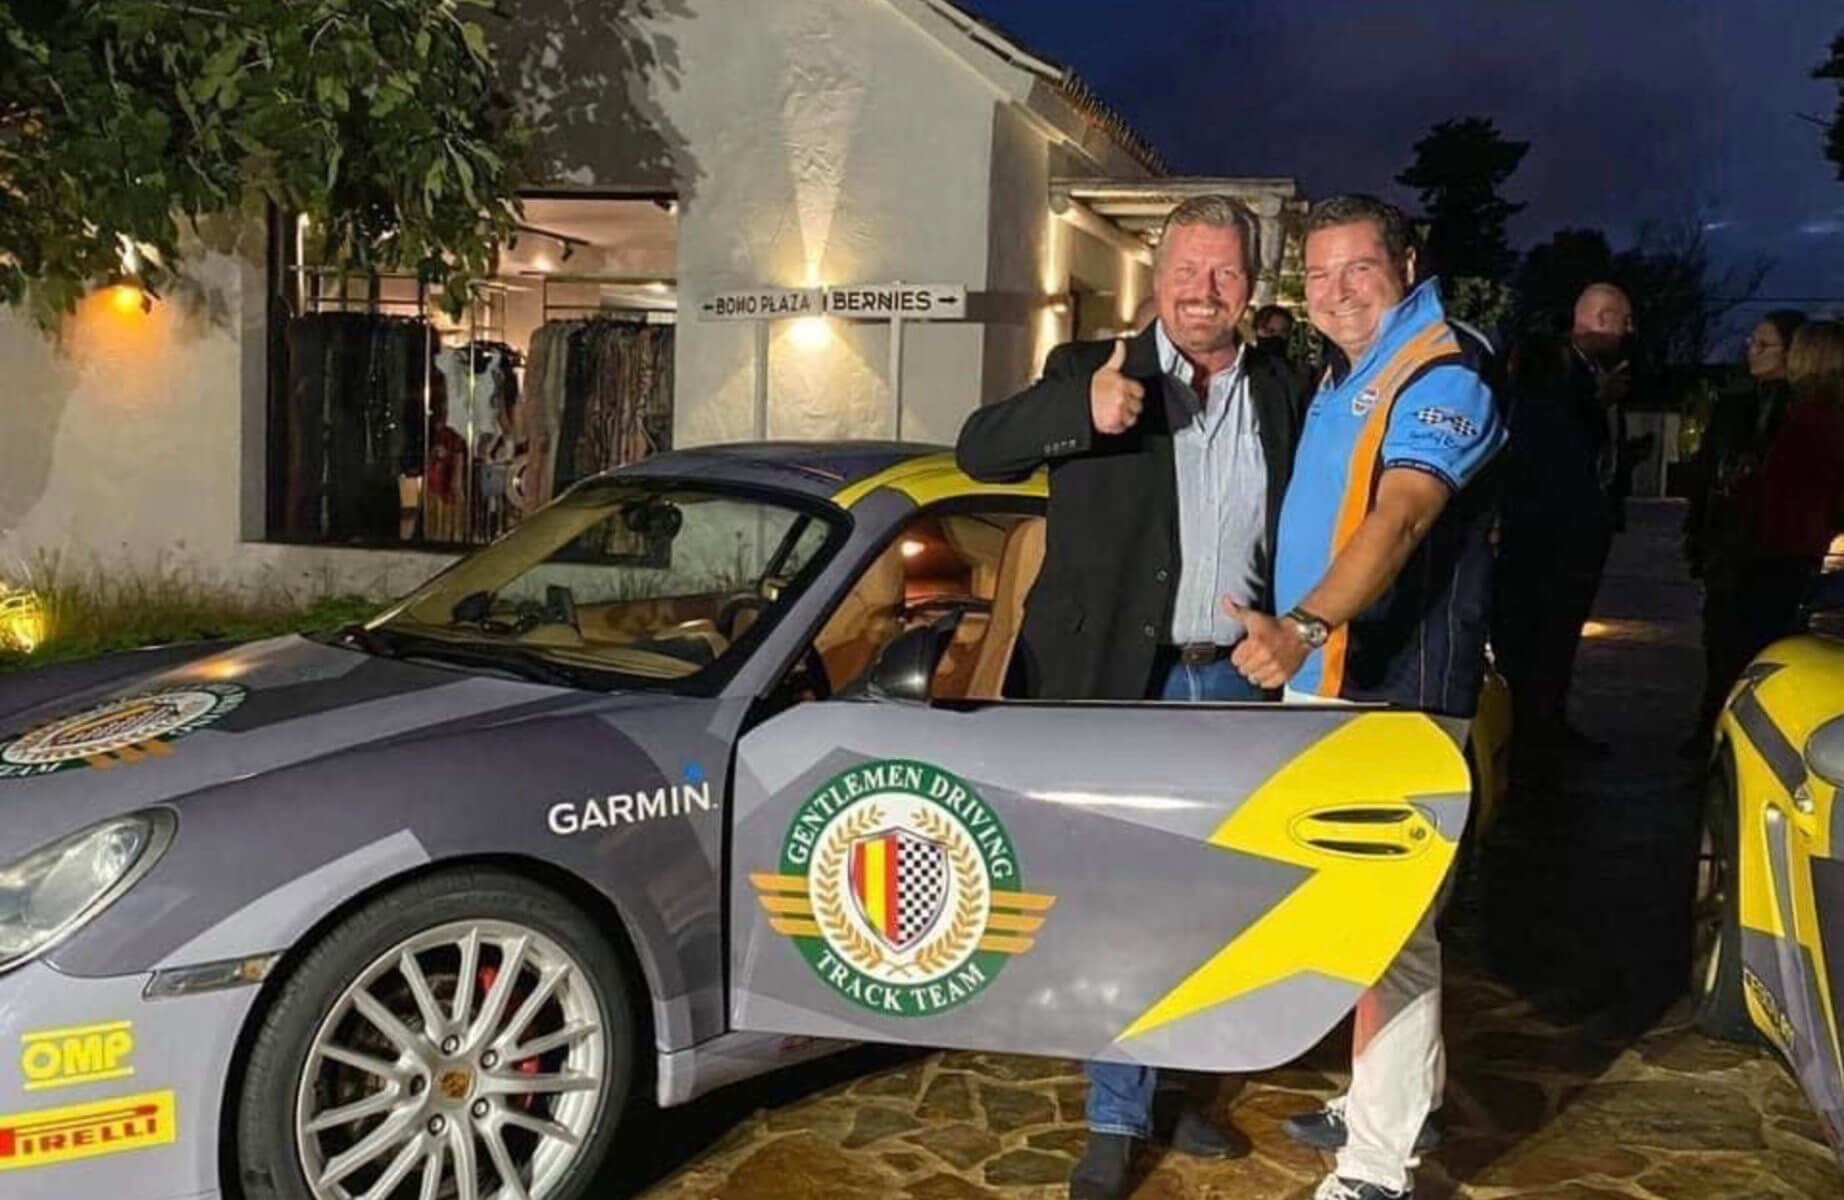 LUXURIA LIFESTYLE BALEARIC ISLANDS AND SOUTHERN SPAIN WELCOMES THE GENTLEMAN DRIVING CLUB AS OUR LATEST PLATINUM PARTNER